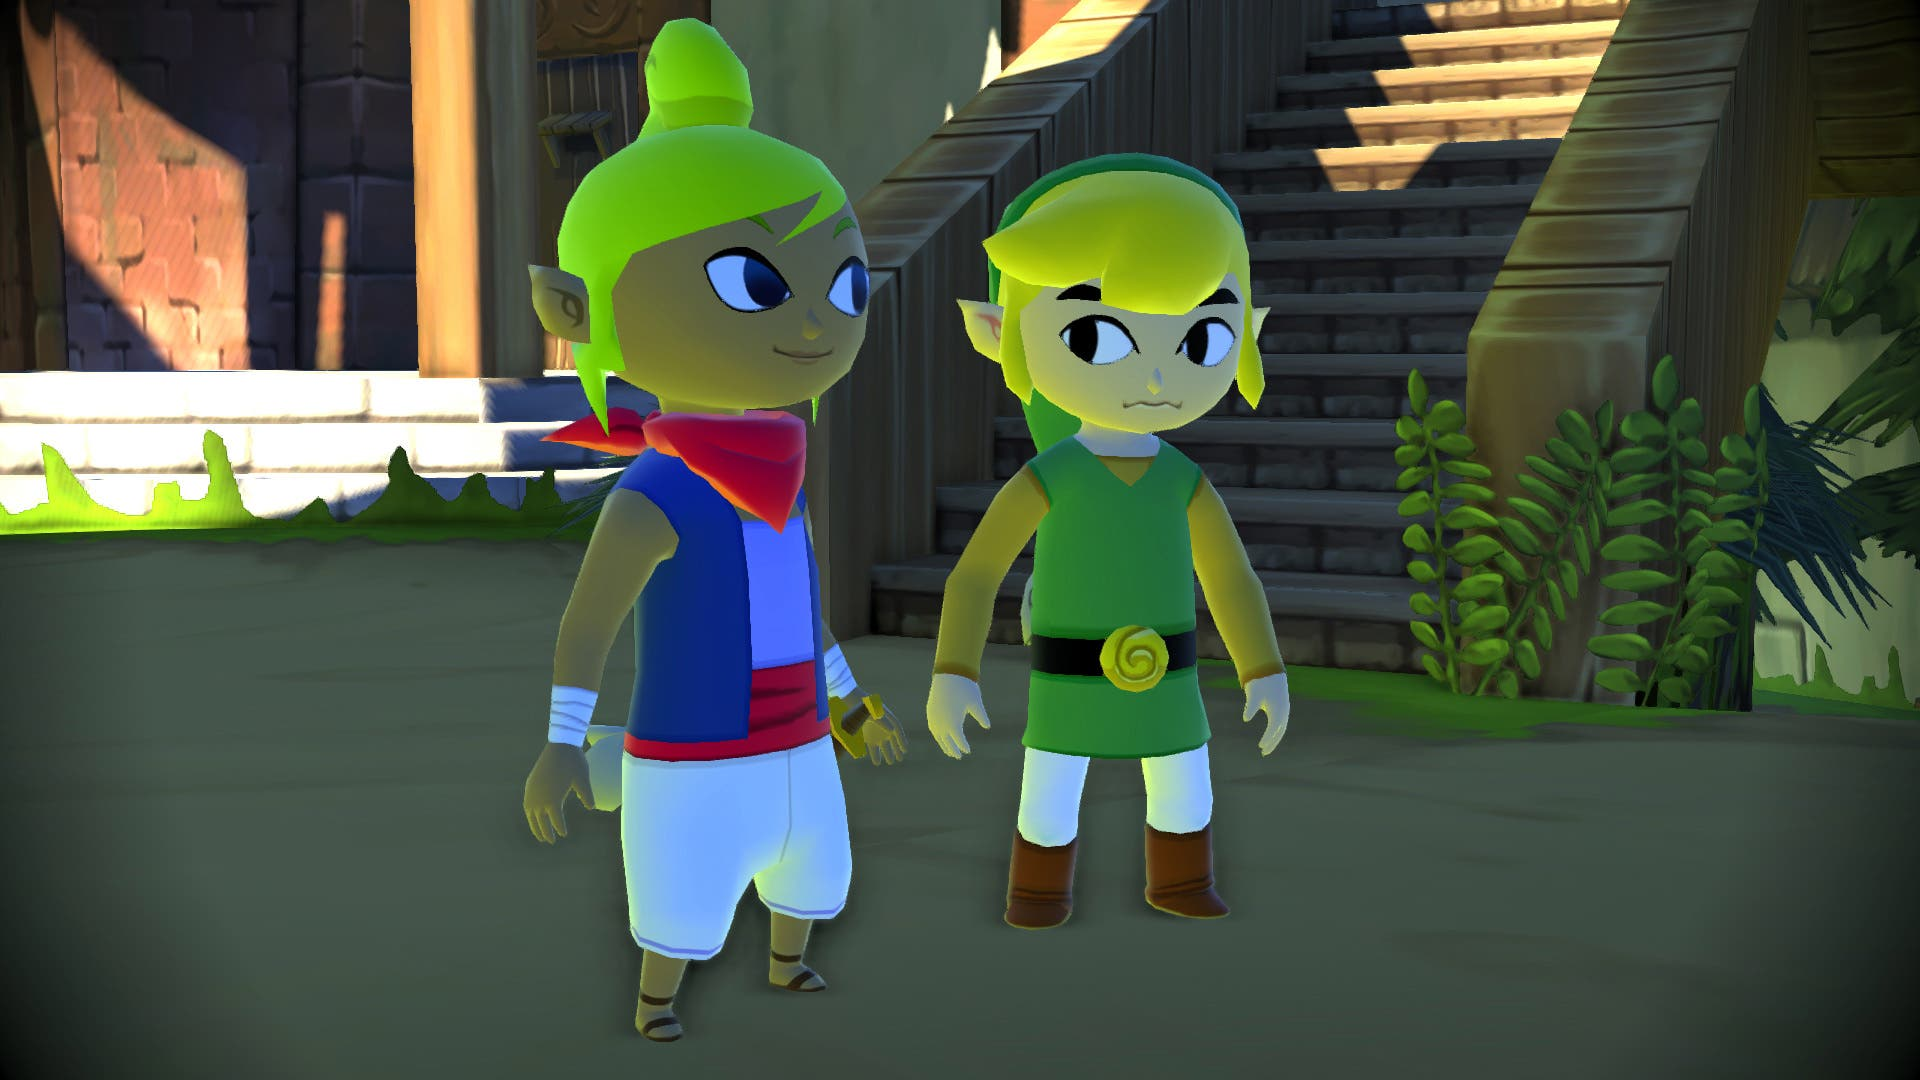 Nuevo nivel de dificultad para The Legend of Zelda: Wind Waker HD